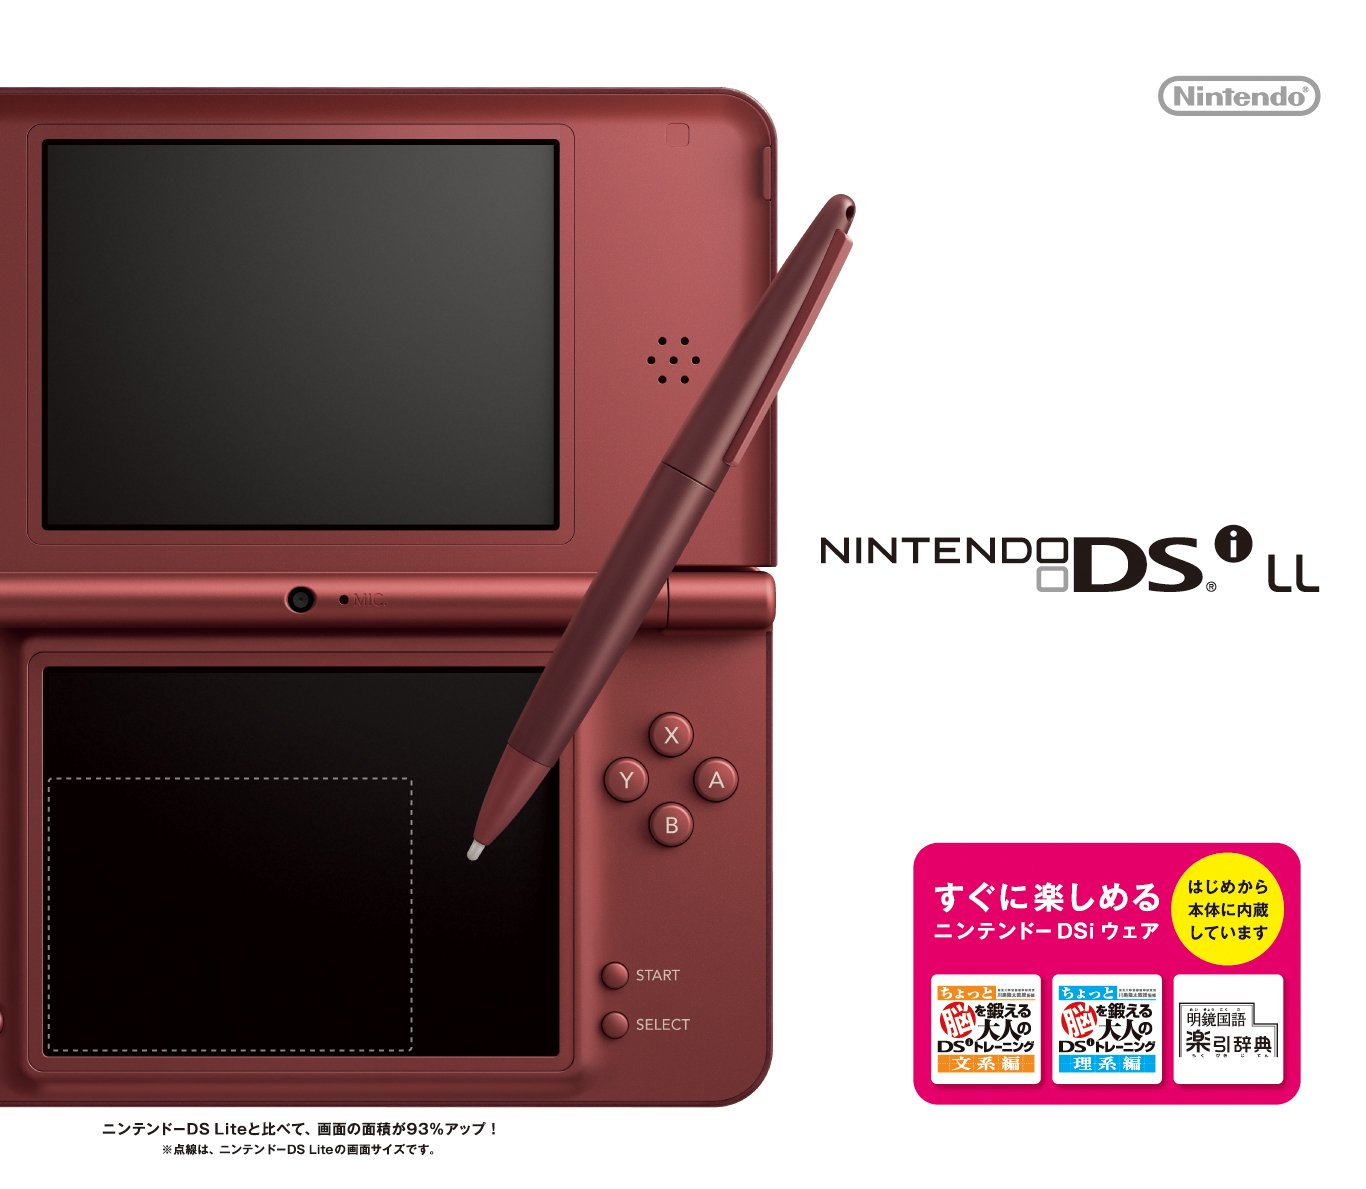 Nintendo DSi LL Portable Video Game Console - Wine Red - Japanese Version (only plays Japanese version DSi games) by Nintendo (Image #2)